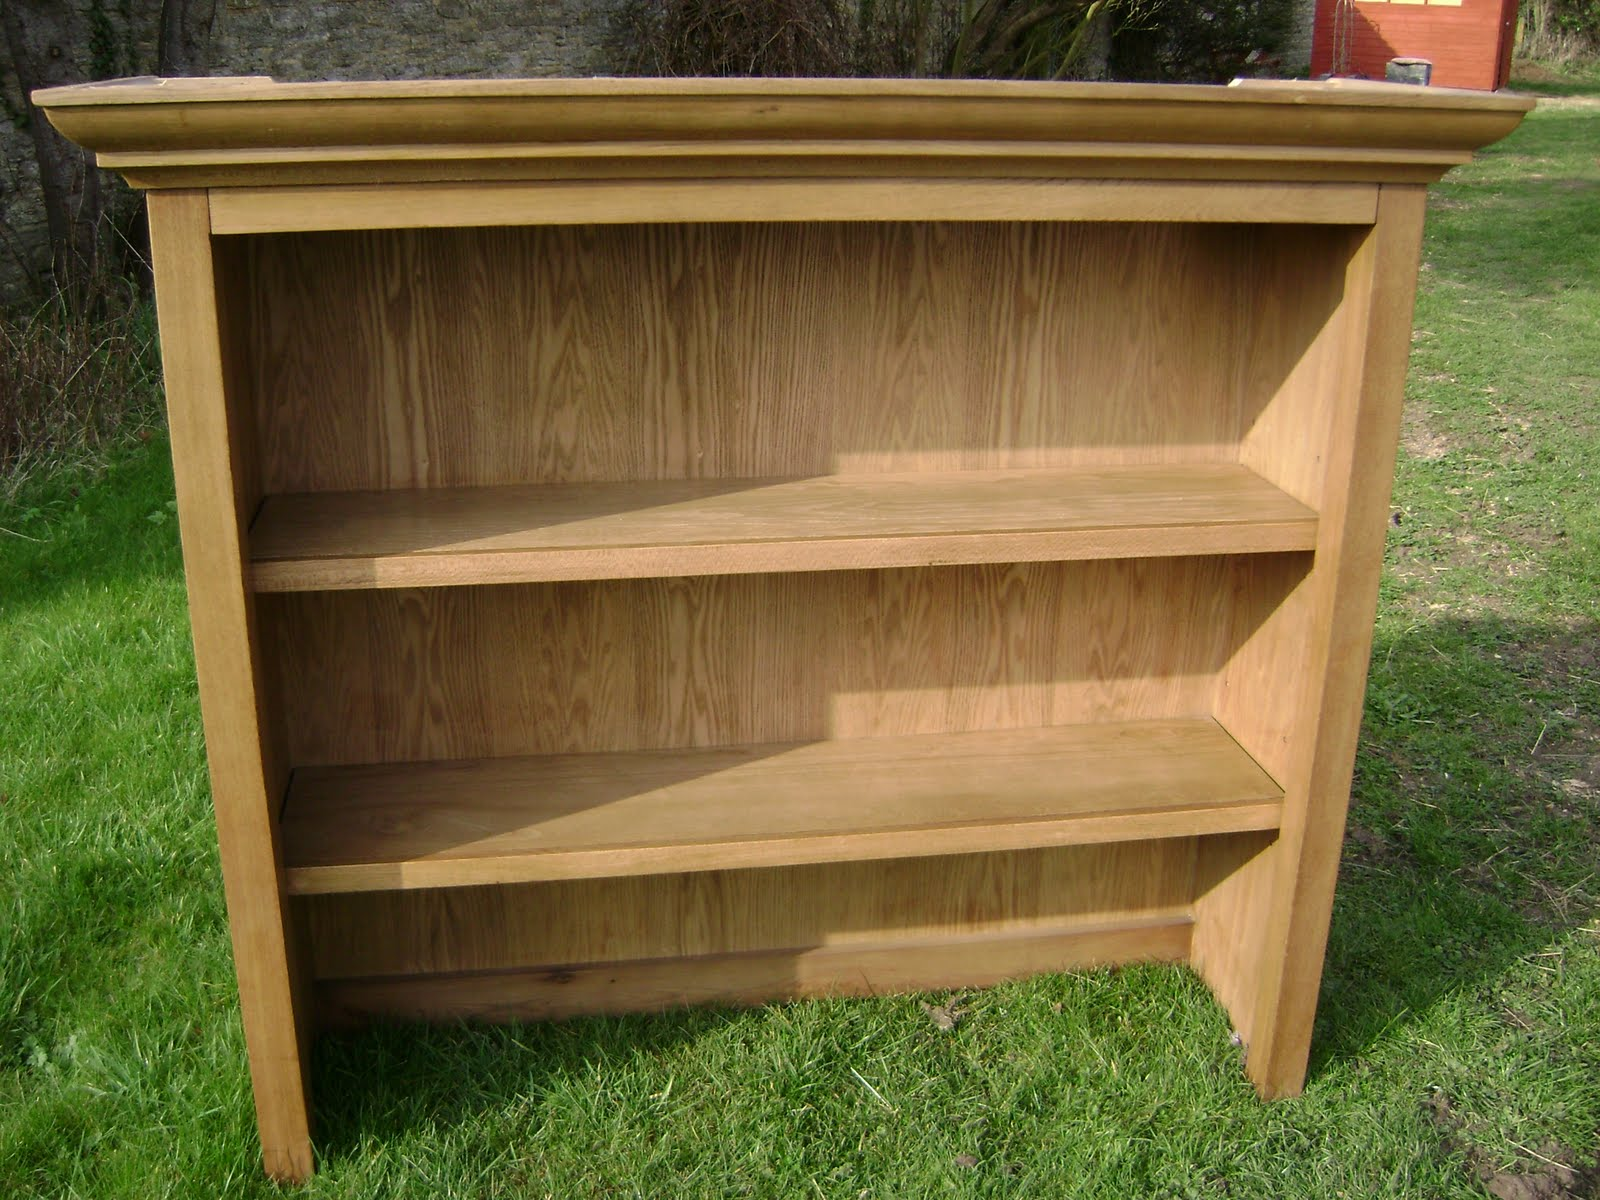 Oak Dresser Top Which Had Damage It Has A Bit Of Work And Some Extra Virgin Olive Oil Rubbed Into To Re Its